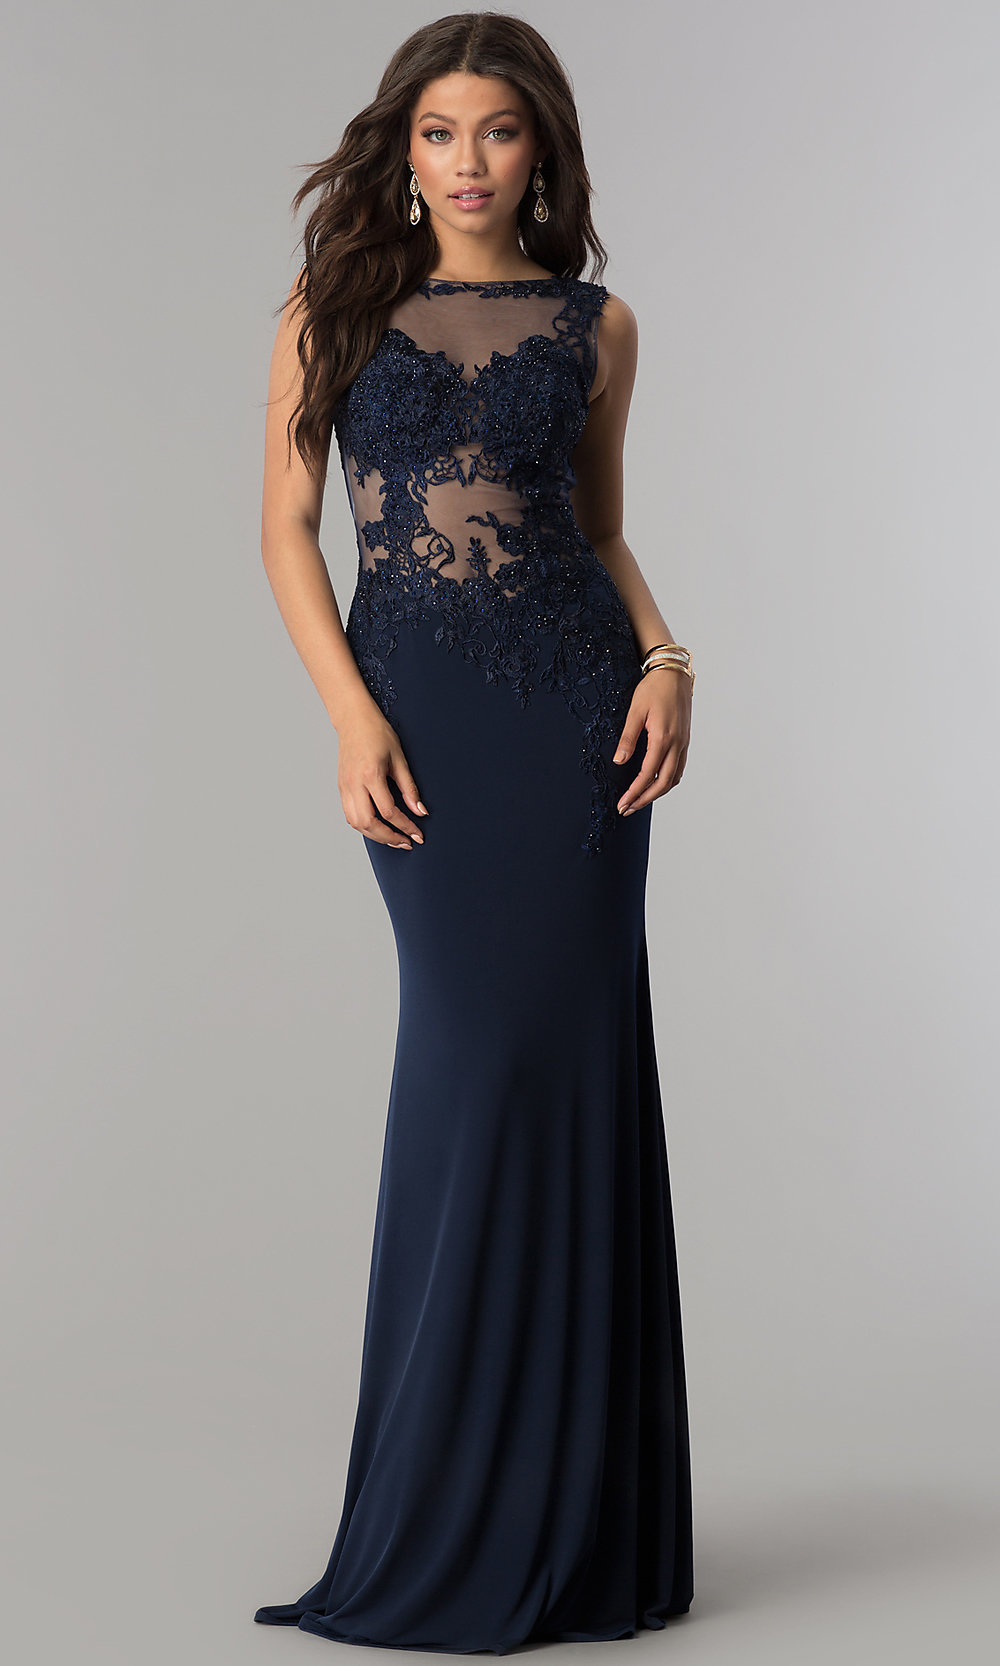 fef4bb9b5f6 Long JVNX by Jovani Sequined-Lace Military Ball Gown